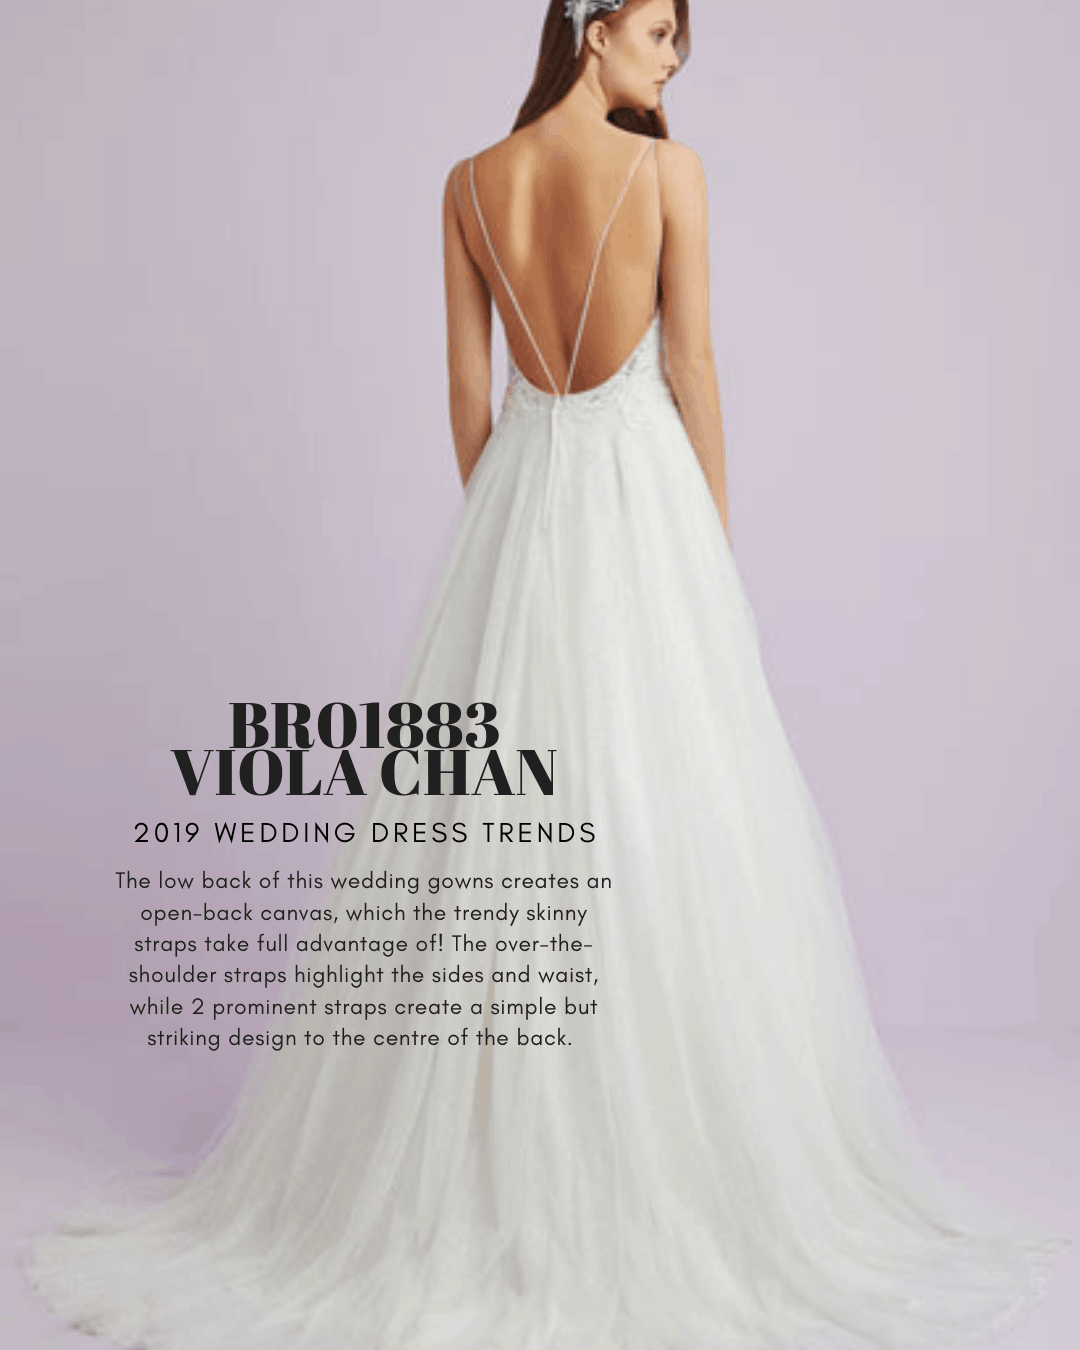 2019 Wedding Dress Trends Set The Aisle Alight With These Styles